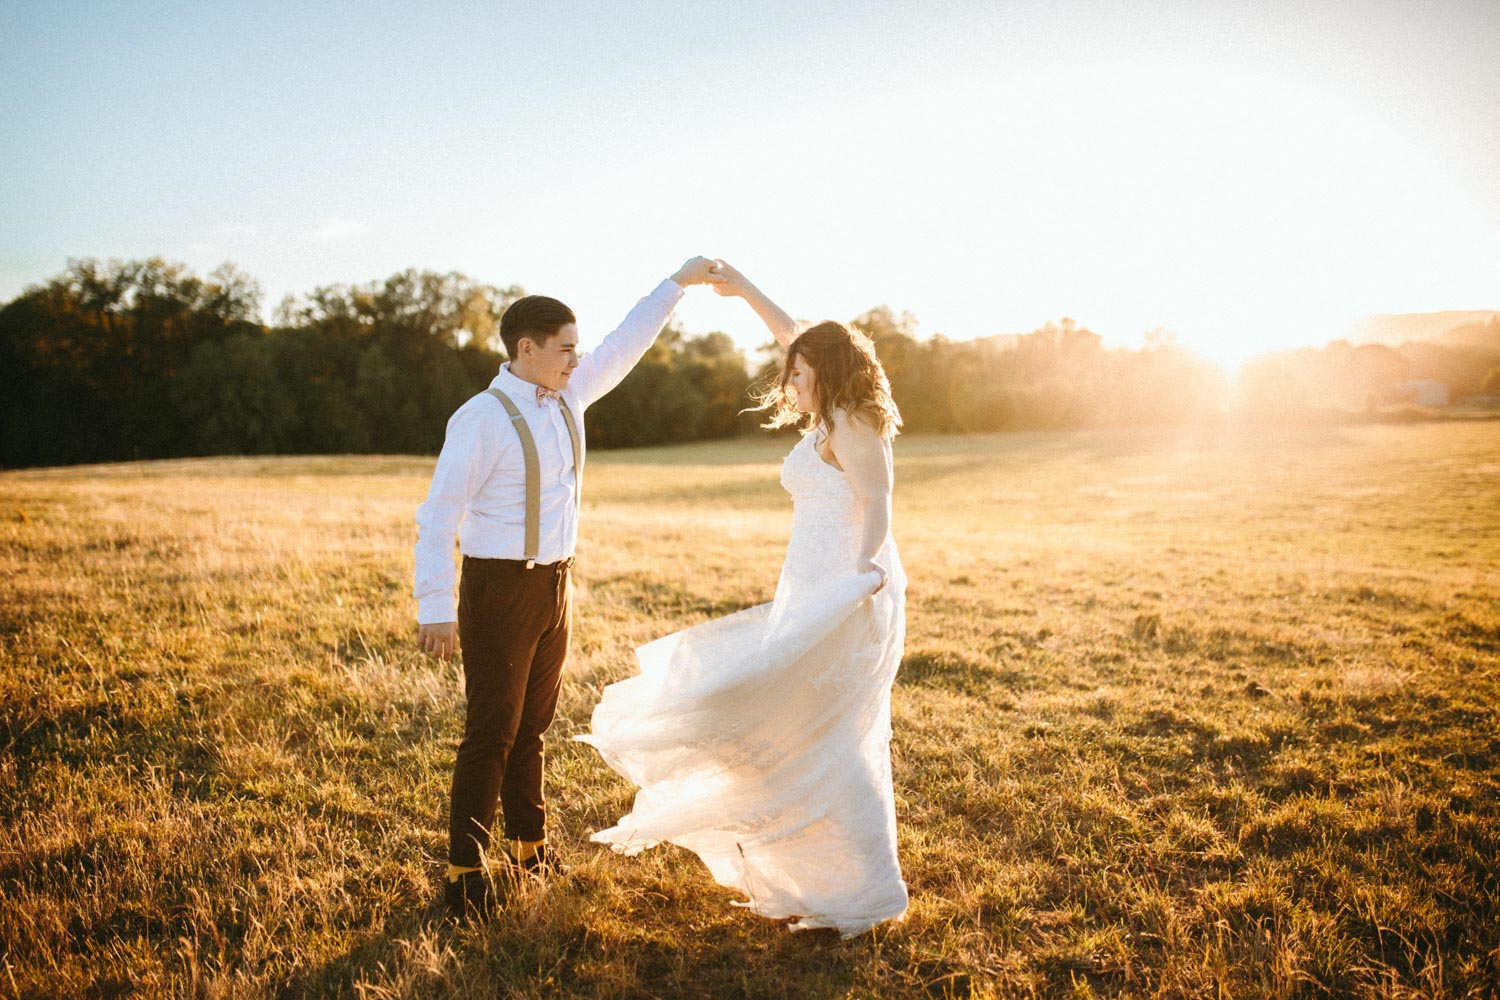 Weddings - The best day of your life, and Im here to document it! Literally from the moment you get up till you're sent off, Im here to capture every moment so when you look back you remember the essence of the whole day